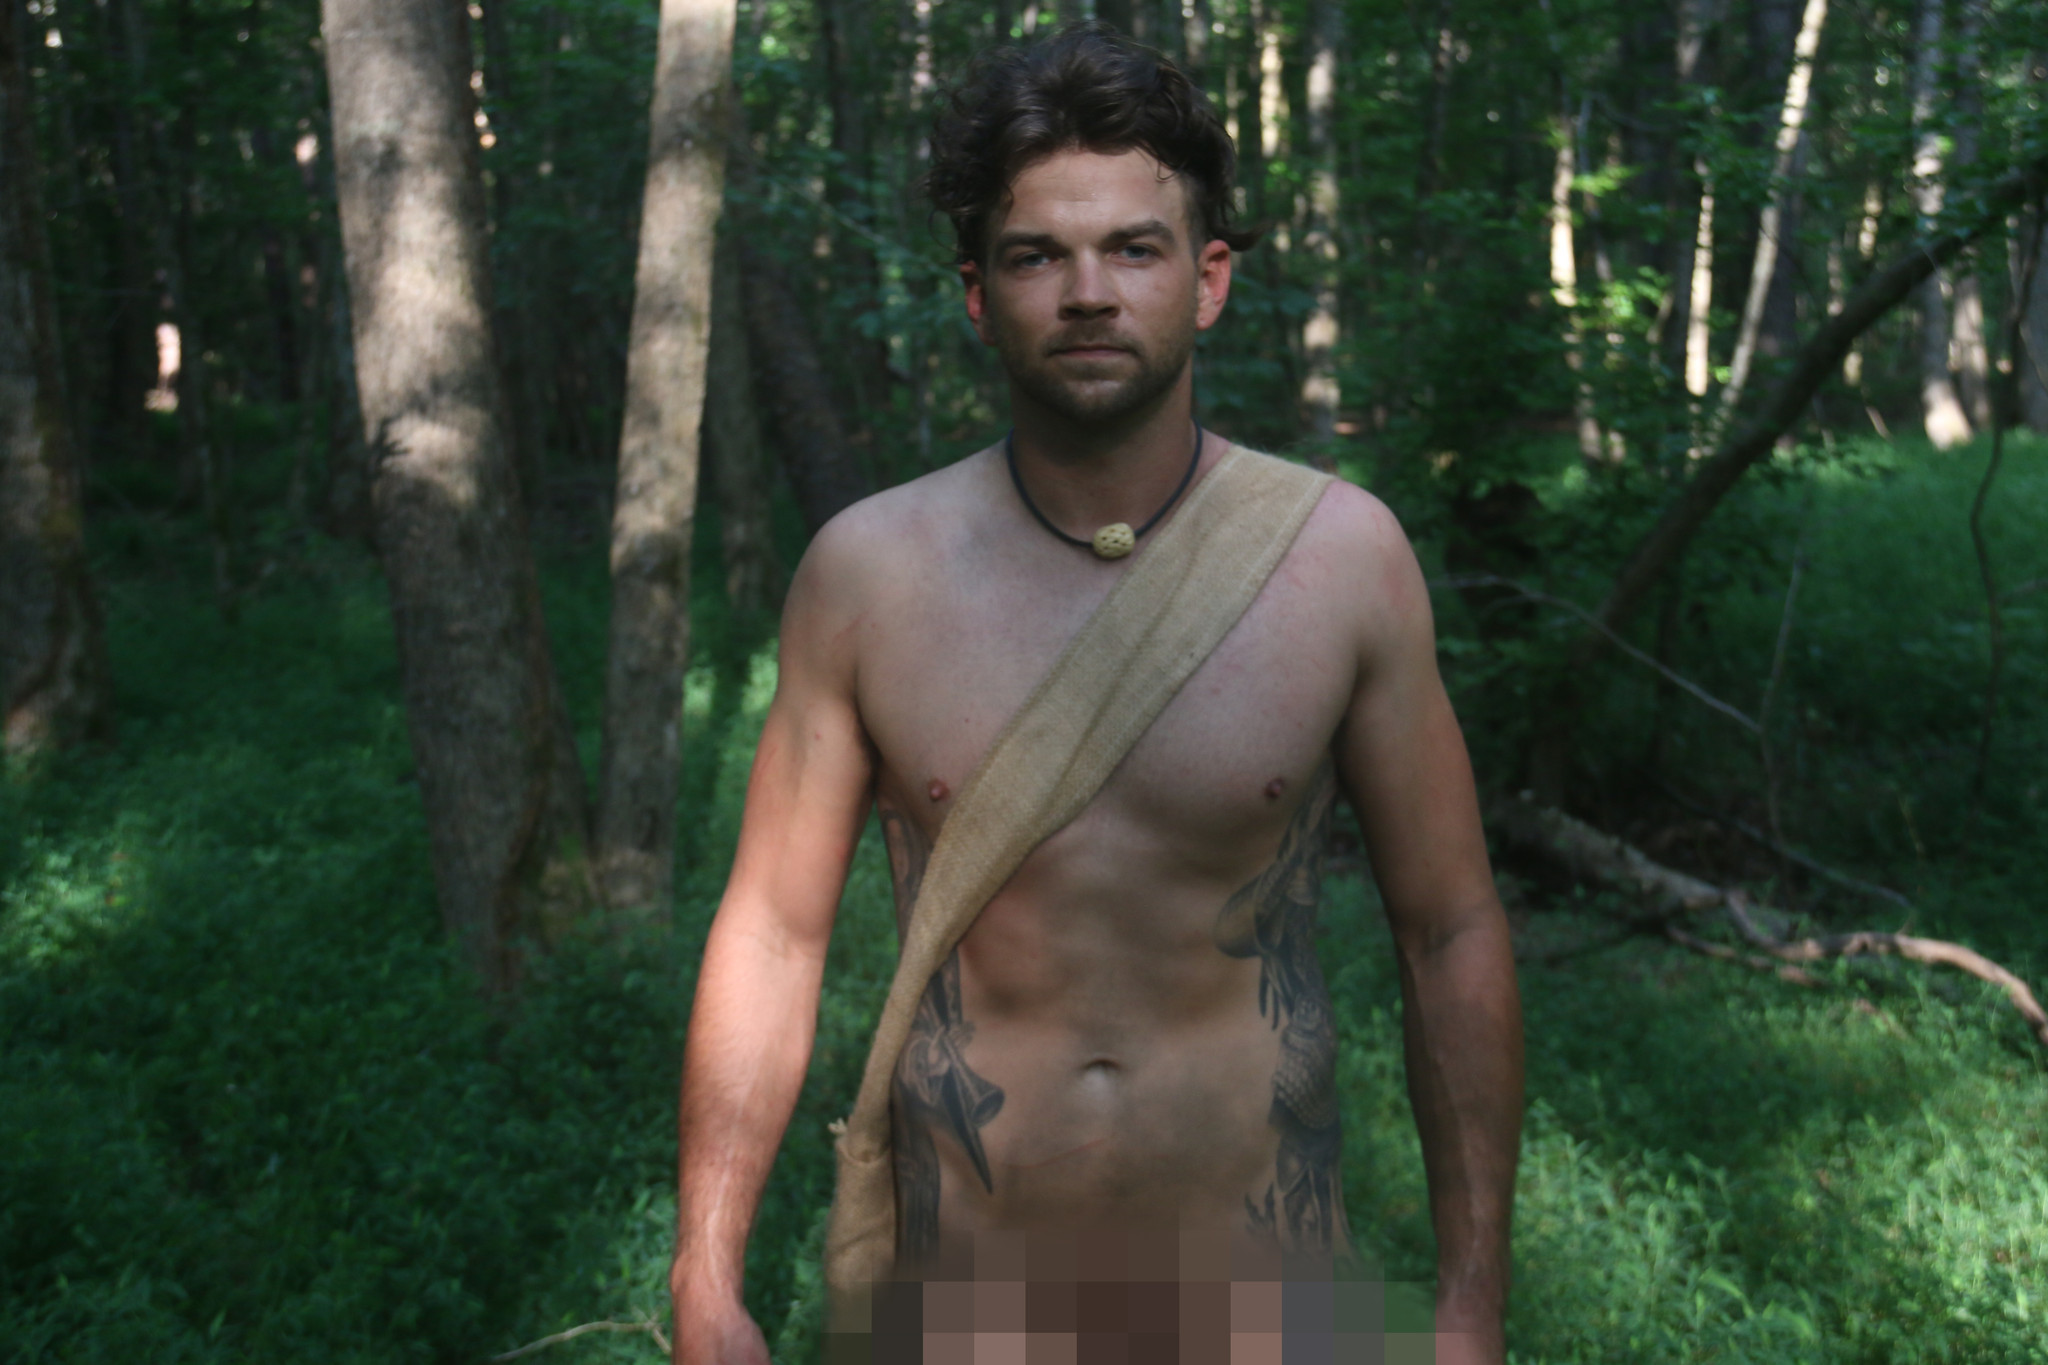 Uncensored pics of naked and afraid stars remarkable